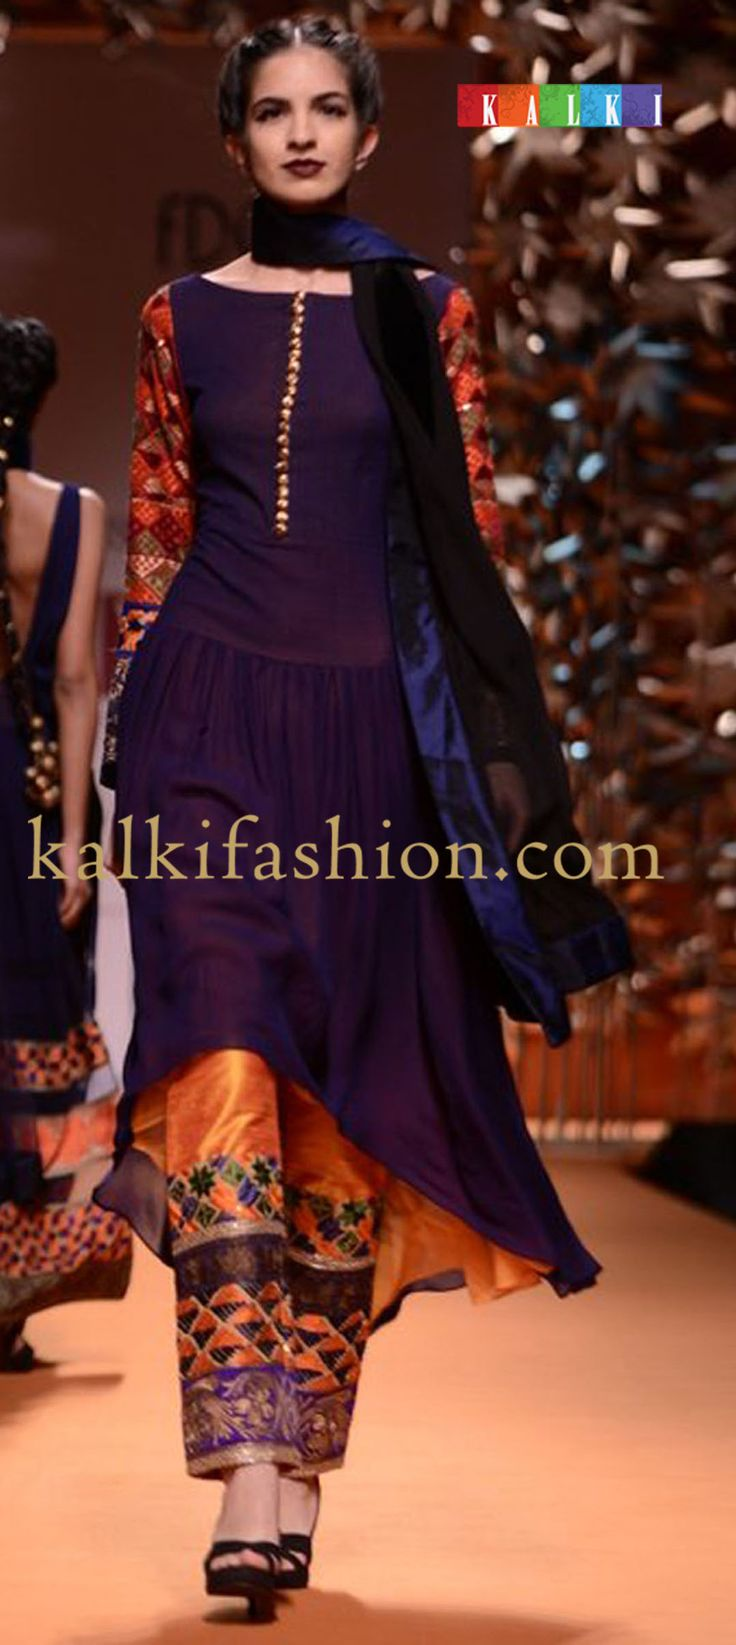 http://www.kalkifashion.com/designers/manish-malhotra.html navy-blue-trail-cut-suit-with-geometric-embroidery